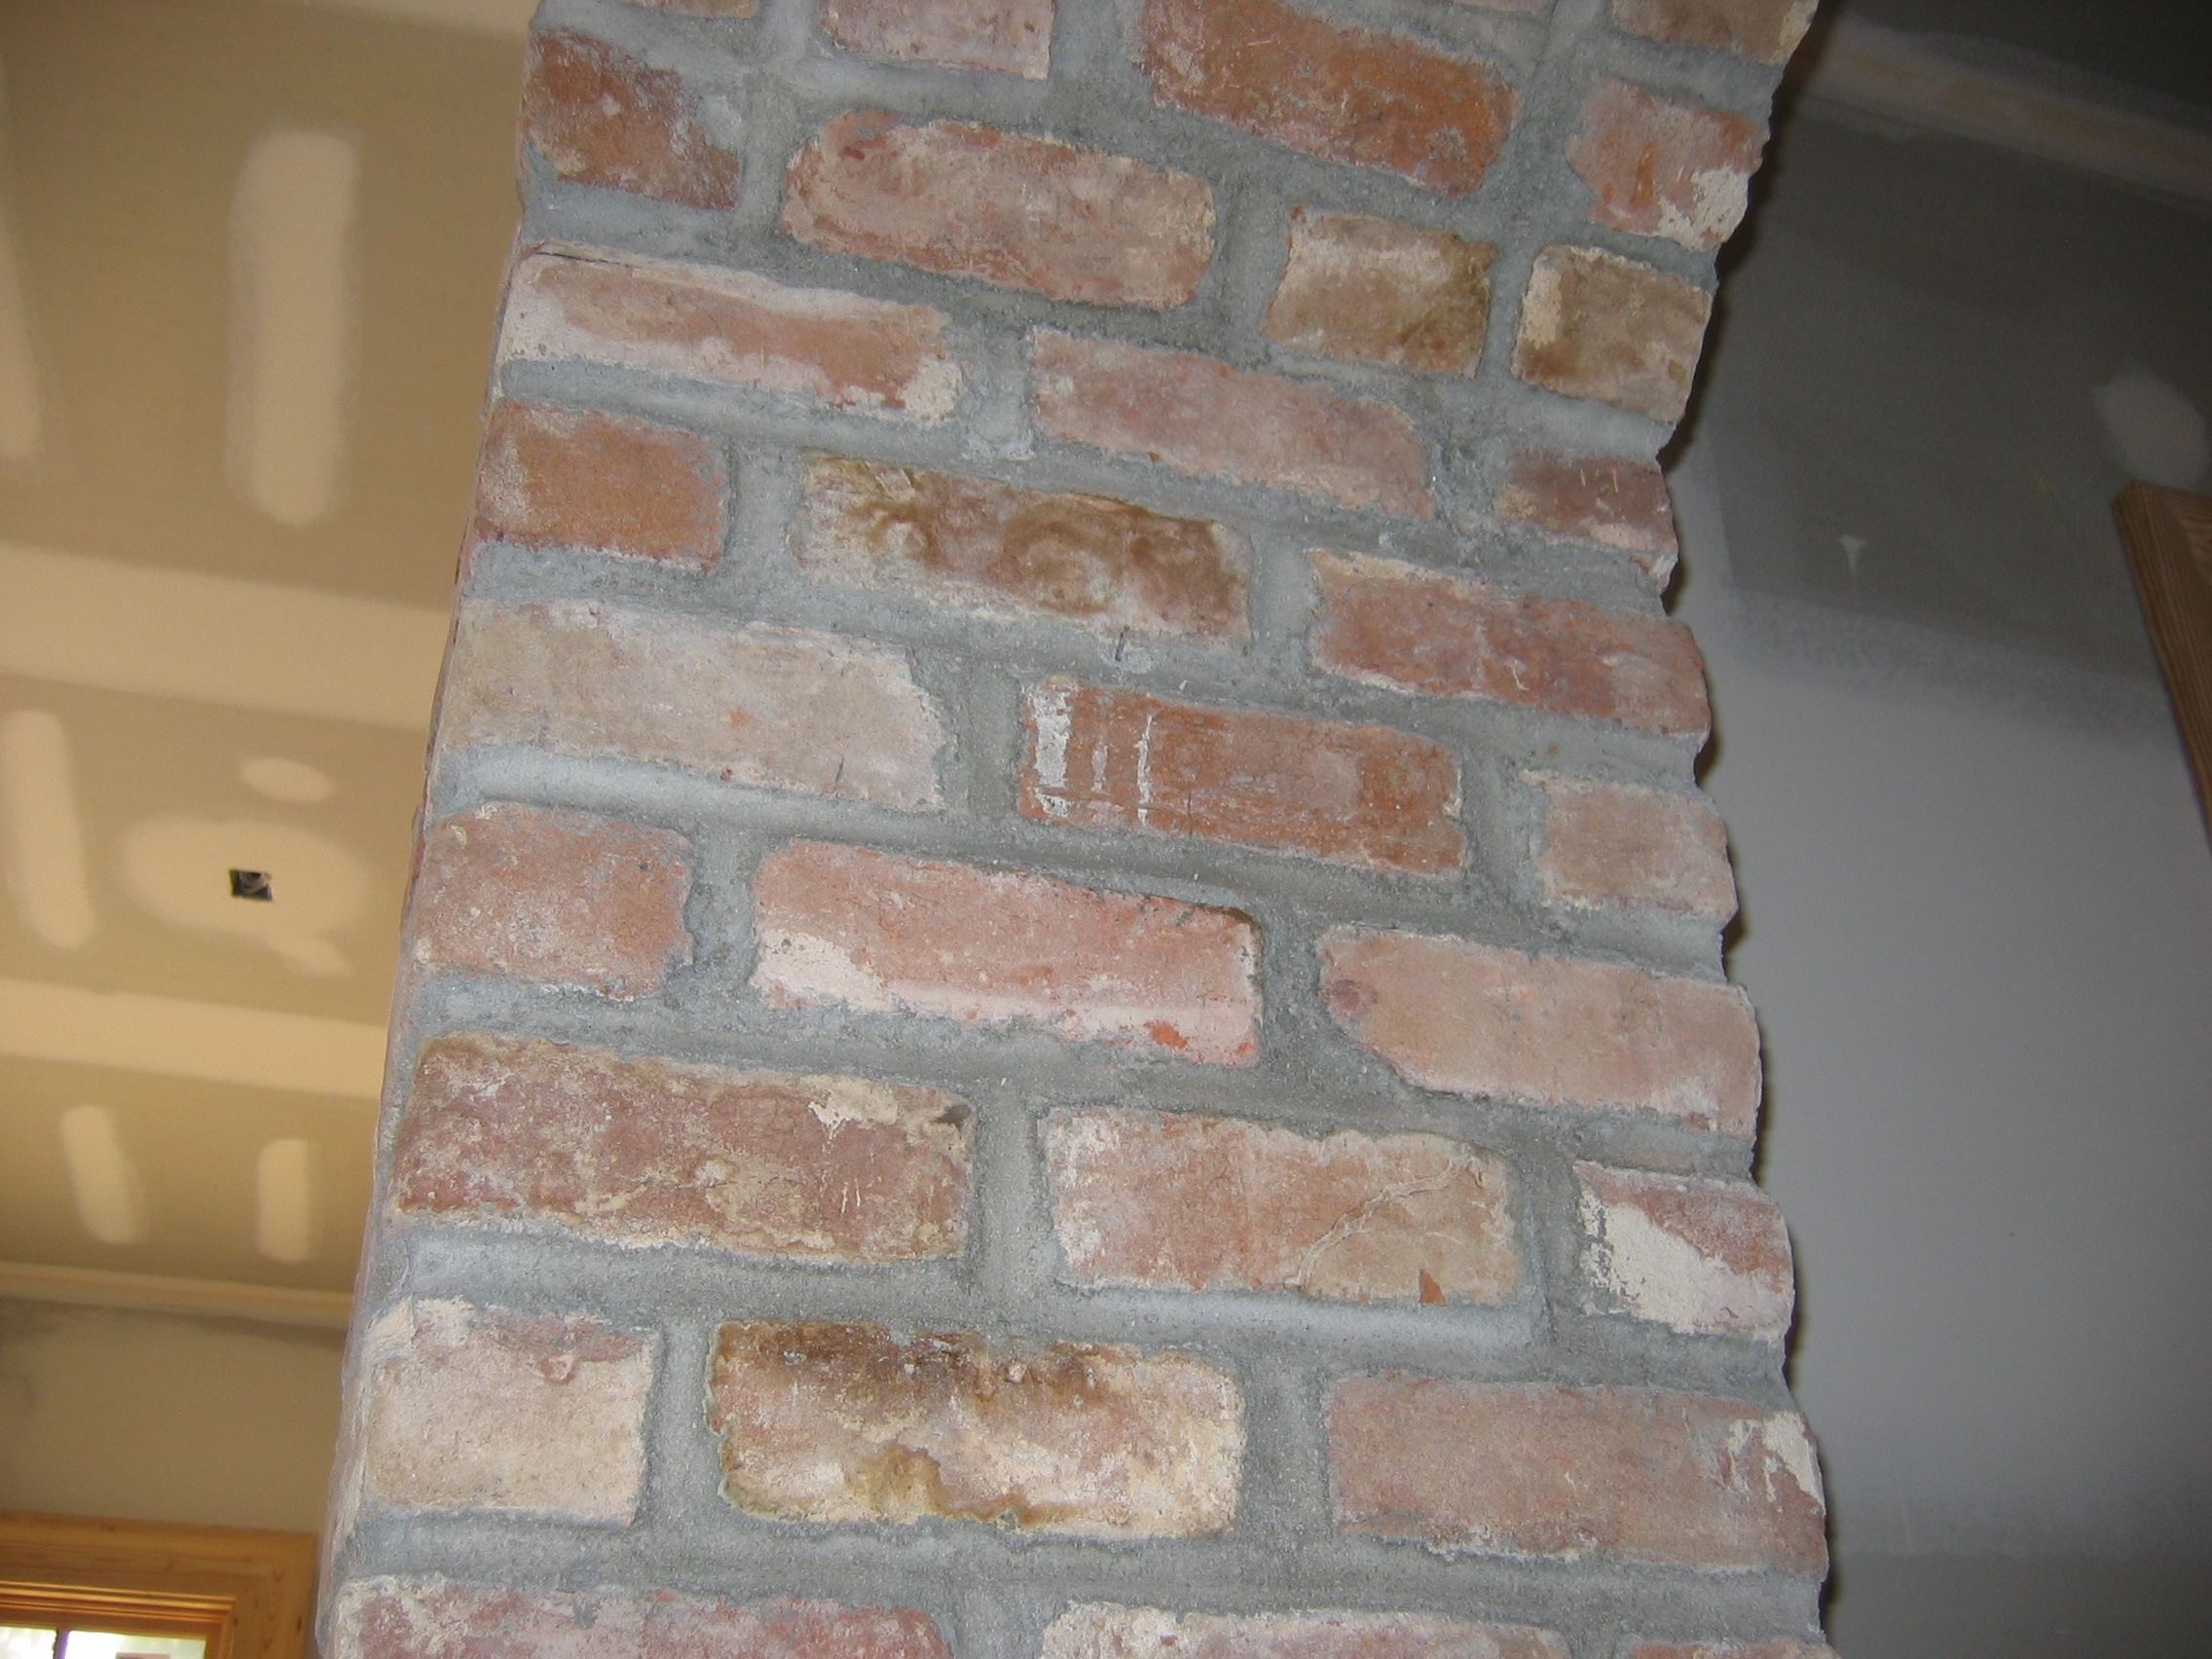 triton international woods reclaimed bricks